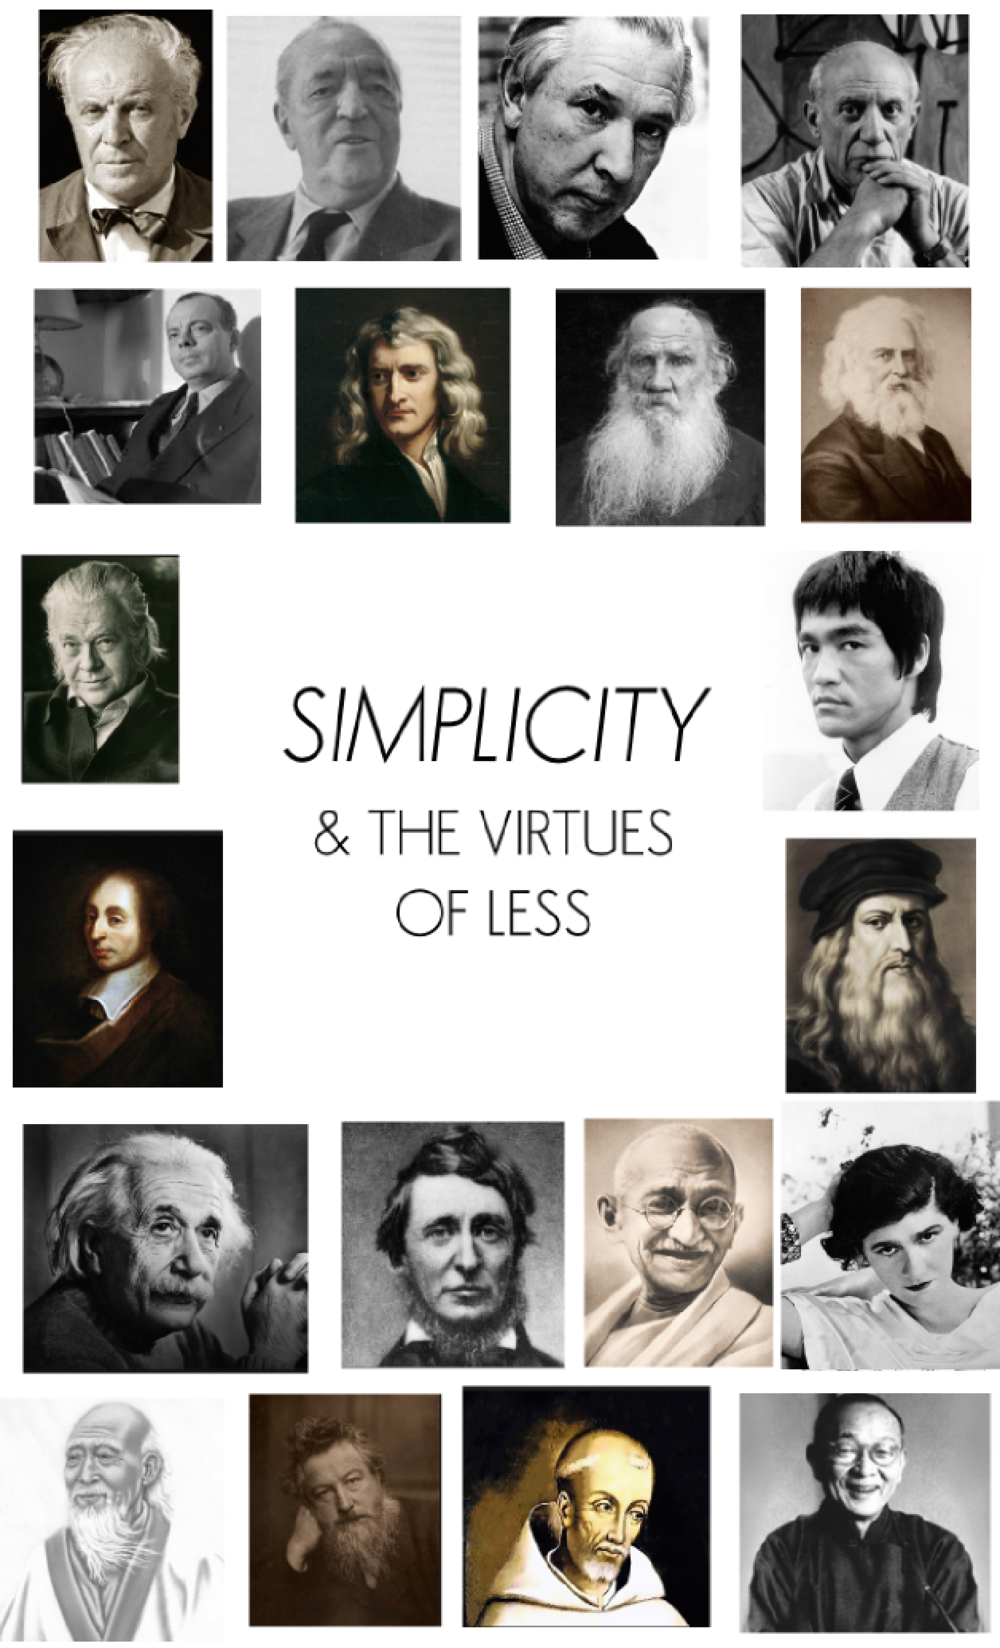 Our life is frittered away by detail. Simplify, simplify, simplify... Essay writing ENGLISH??!! HELP!!!!!!!!!!?